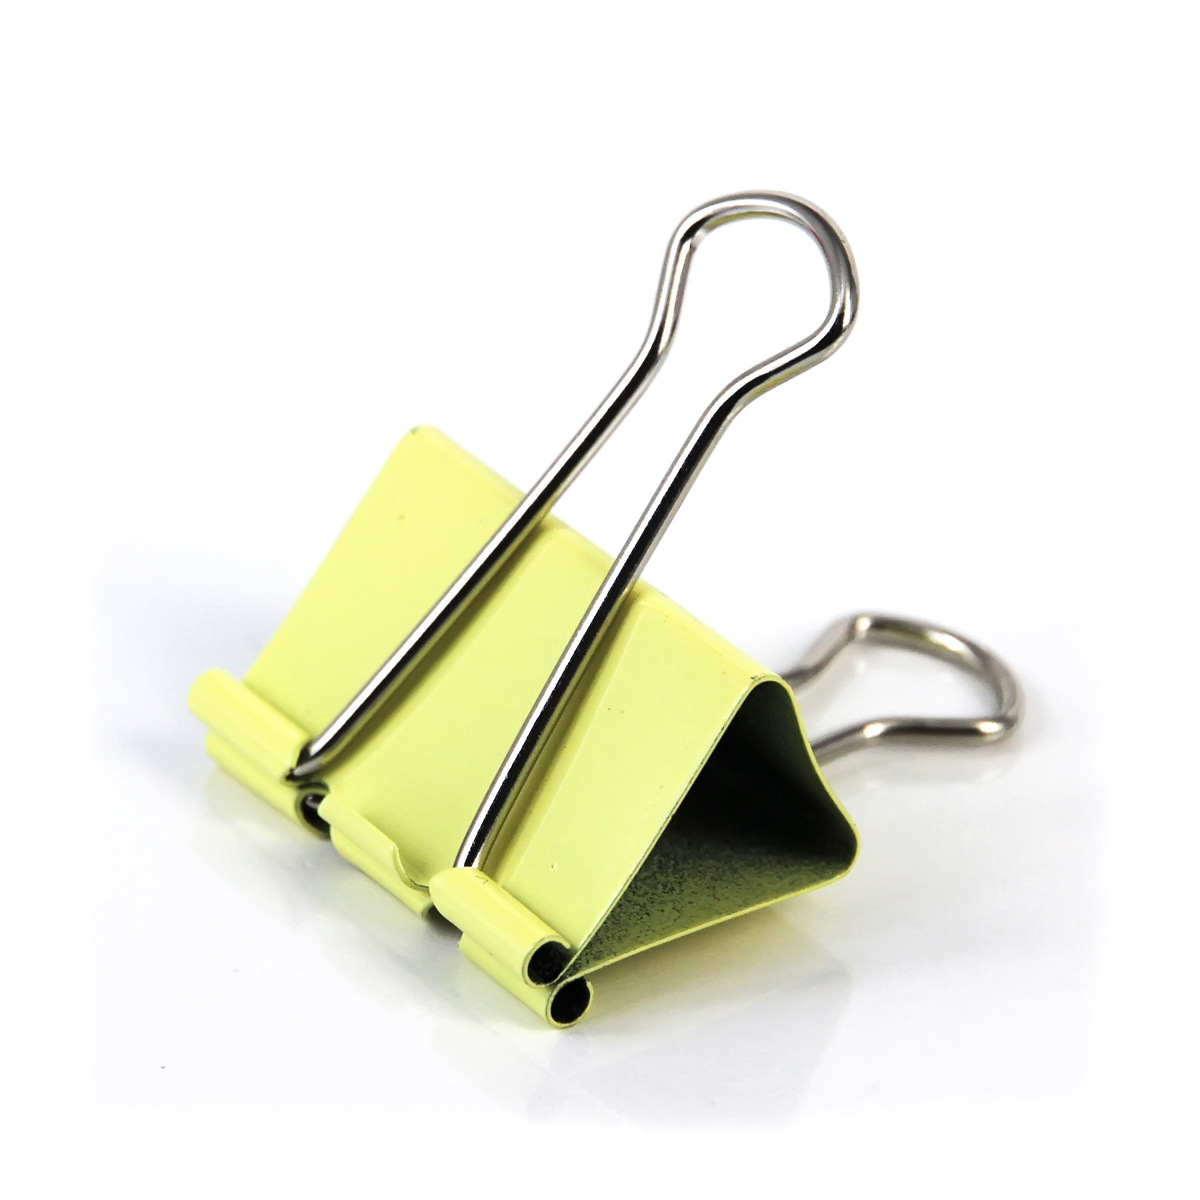 Aliexpress.com : Buy 24Pcs/box 32mm Width Binder Clips Colorful ...